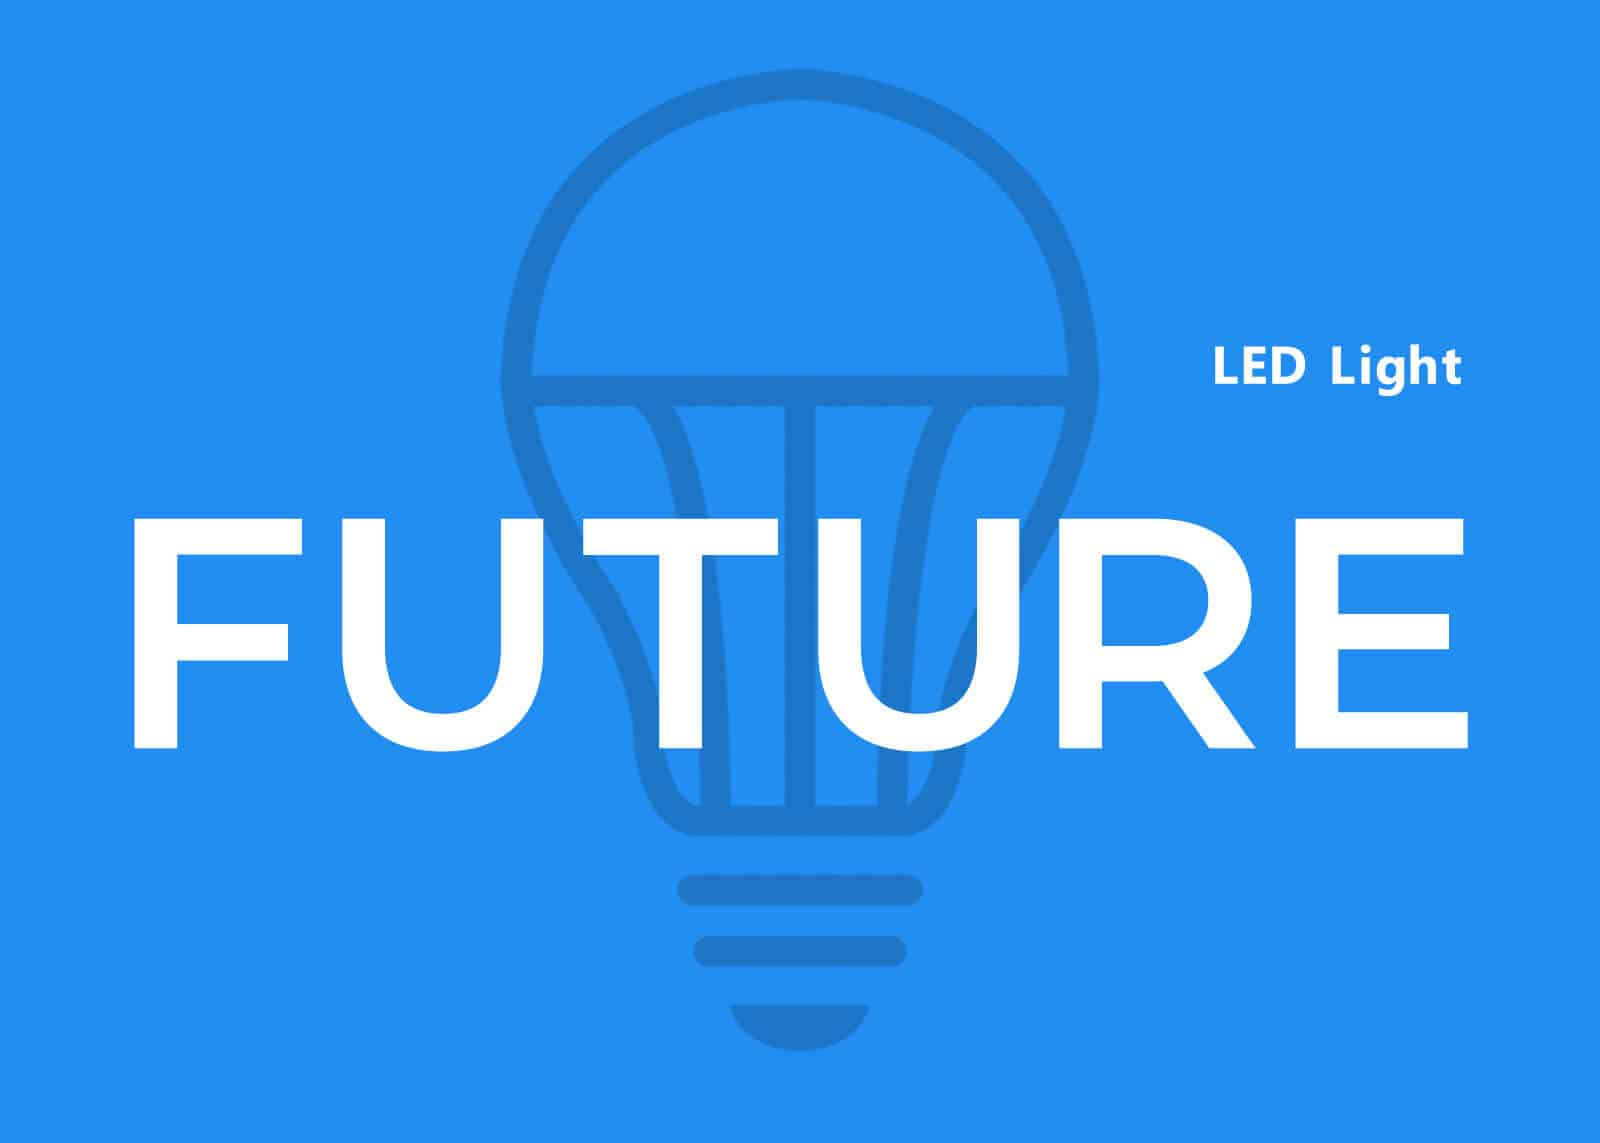 LED light future image